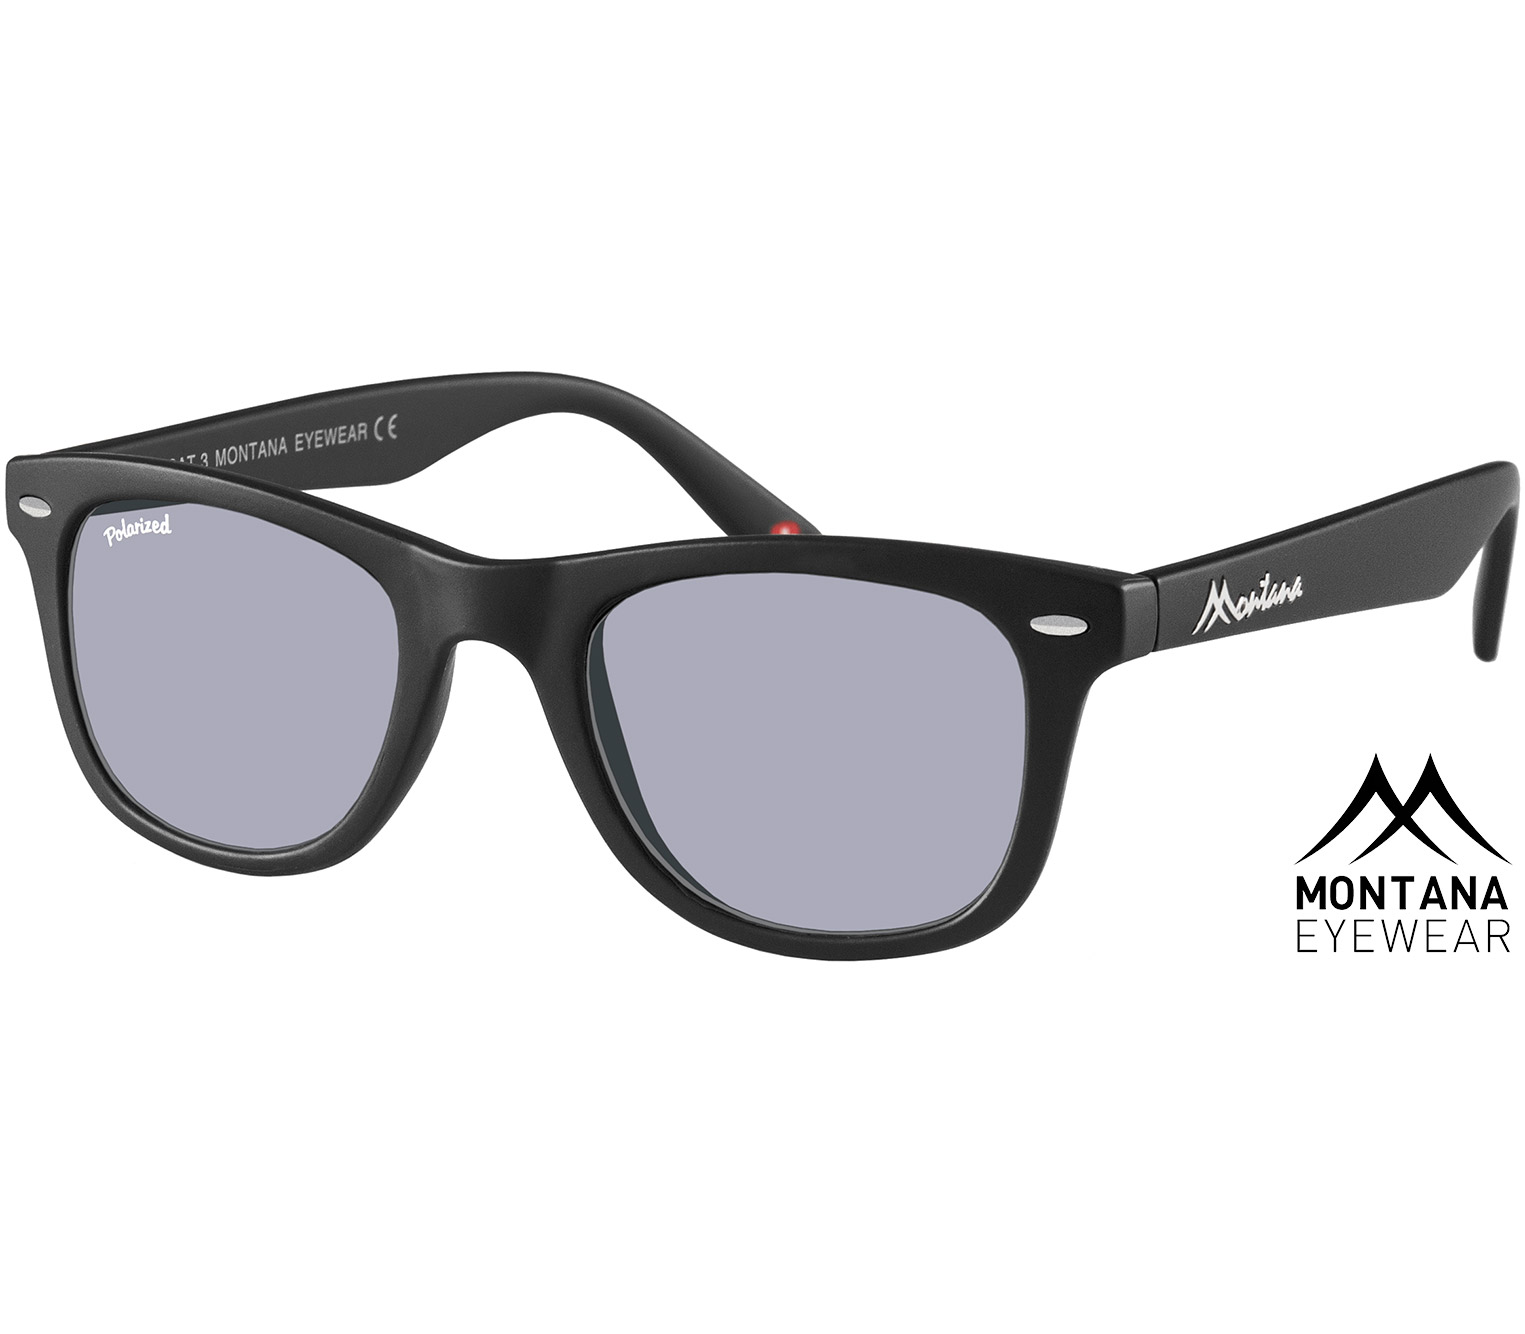 Main Image (Angle) - Valencia (Black) Sunglasses